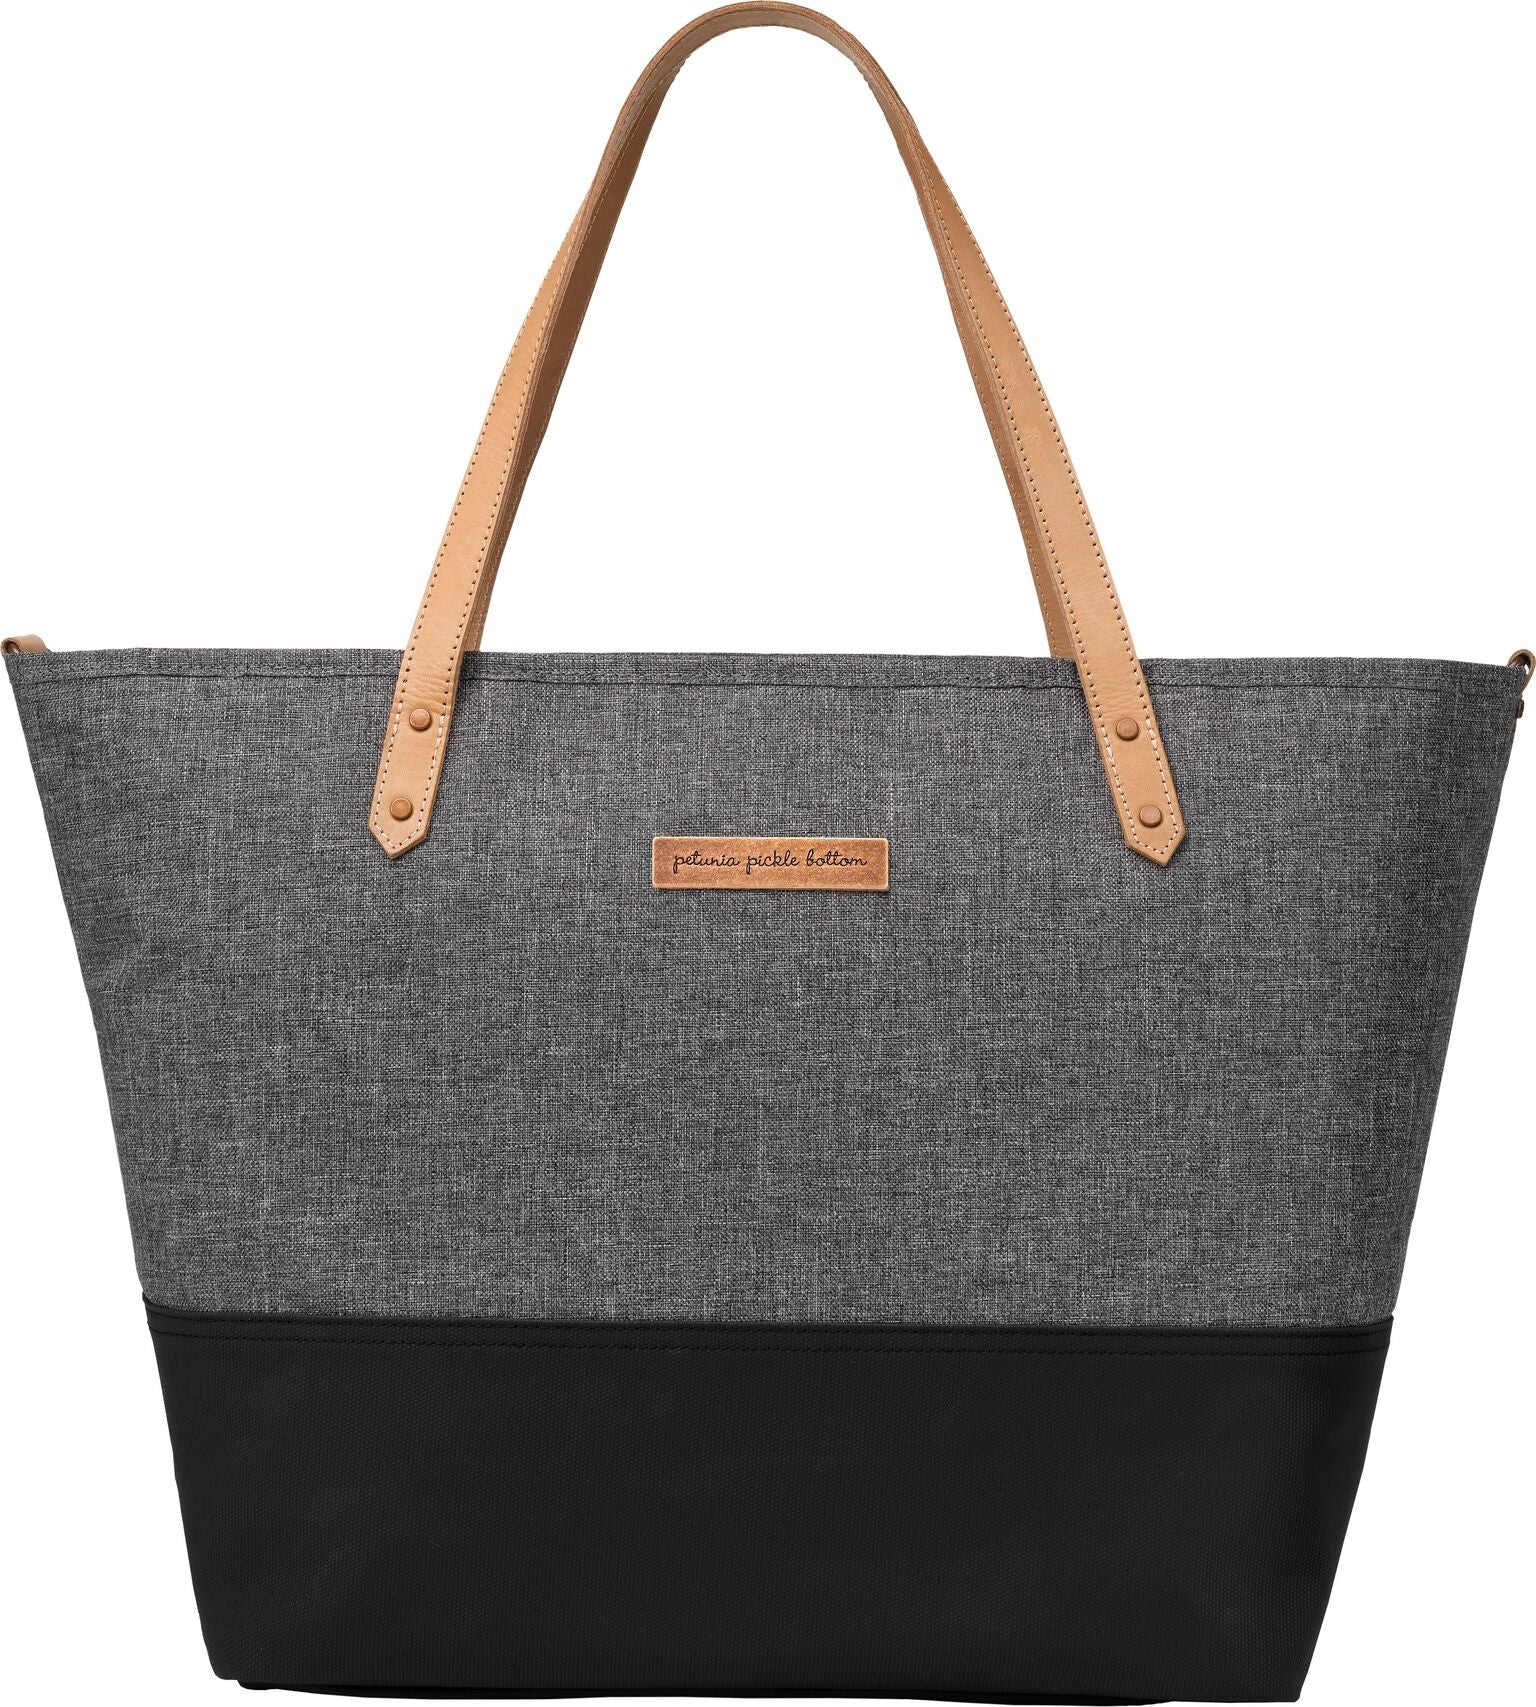 Petunia Pickle Bottom Downtown Tote - Birch/Graphite